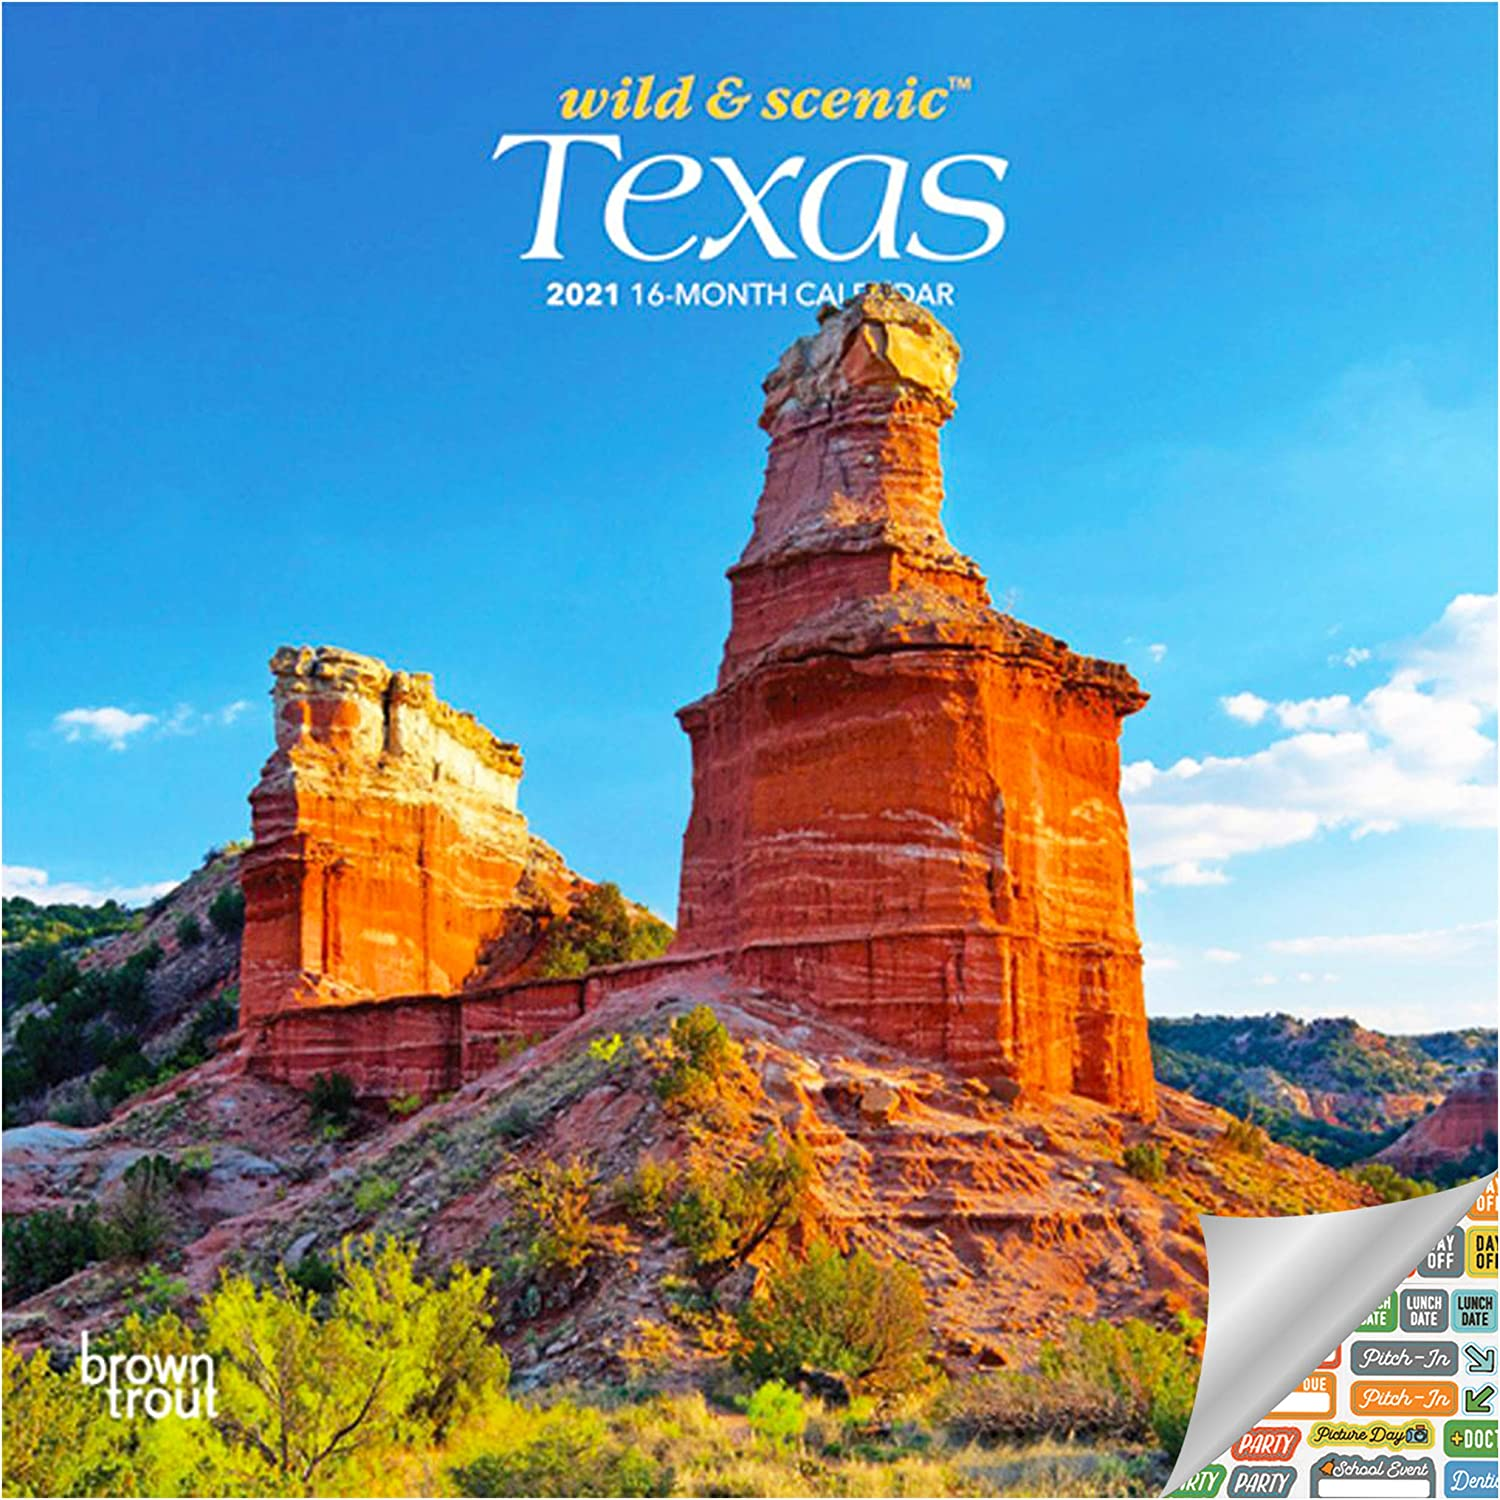 Texas Wild & Scenic Calendar 2021 Bundle - Deluxe 2021 Lone Star State Mini Calendar with Over 100 Calendar Stickers (Texas Nature, Office Supplies)